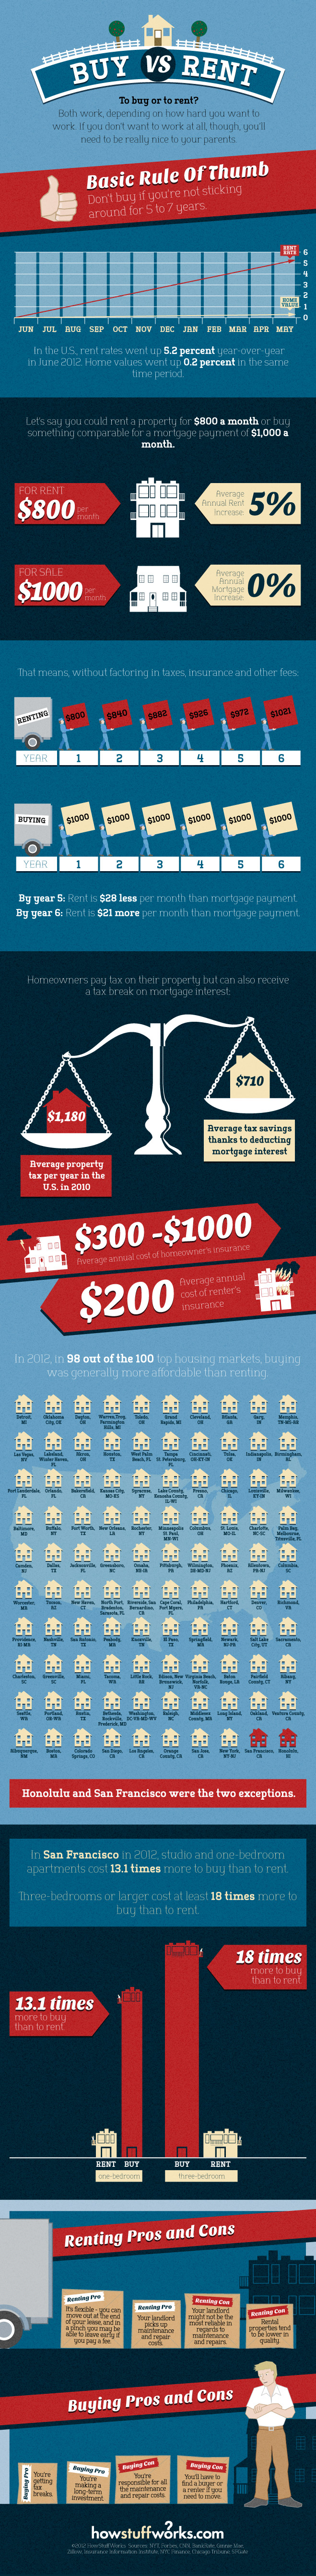 Infographic: Buy vs. Rent